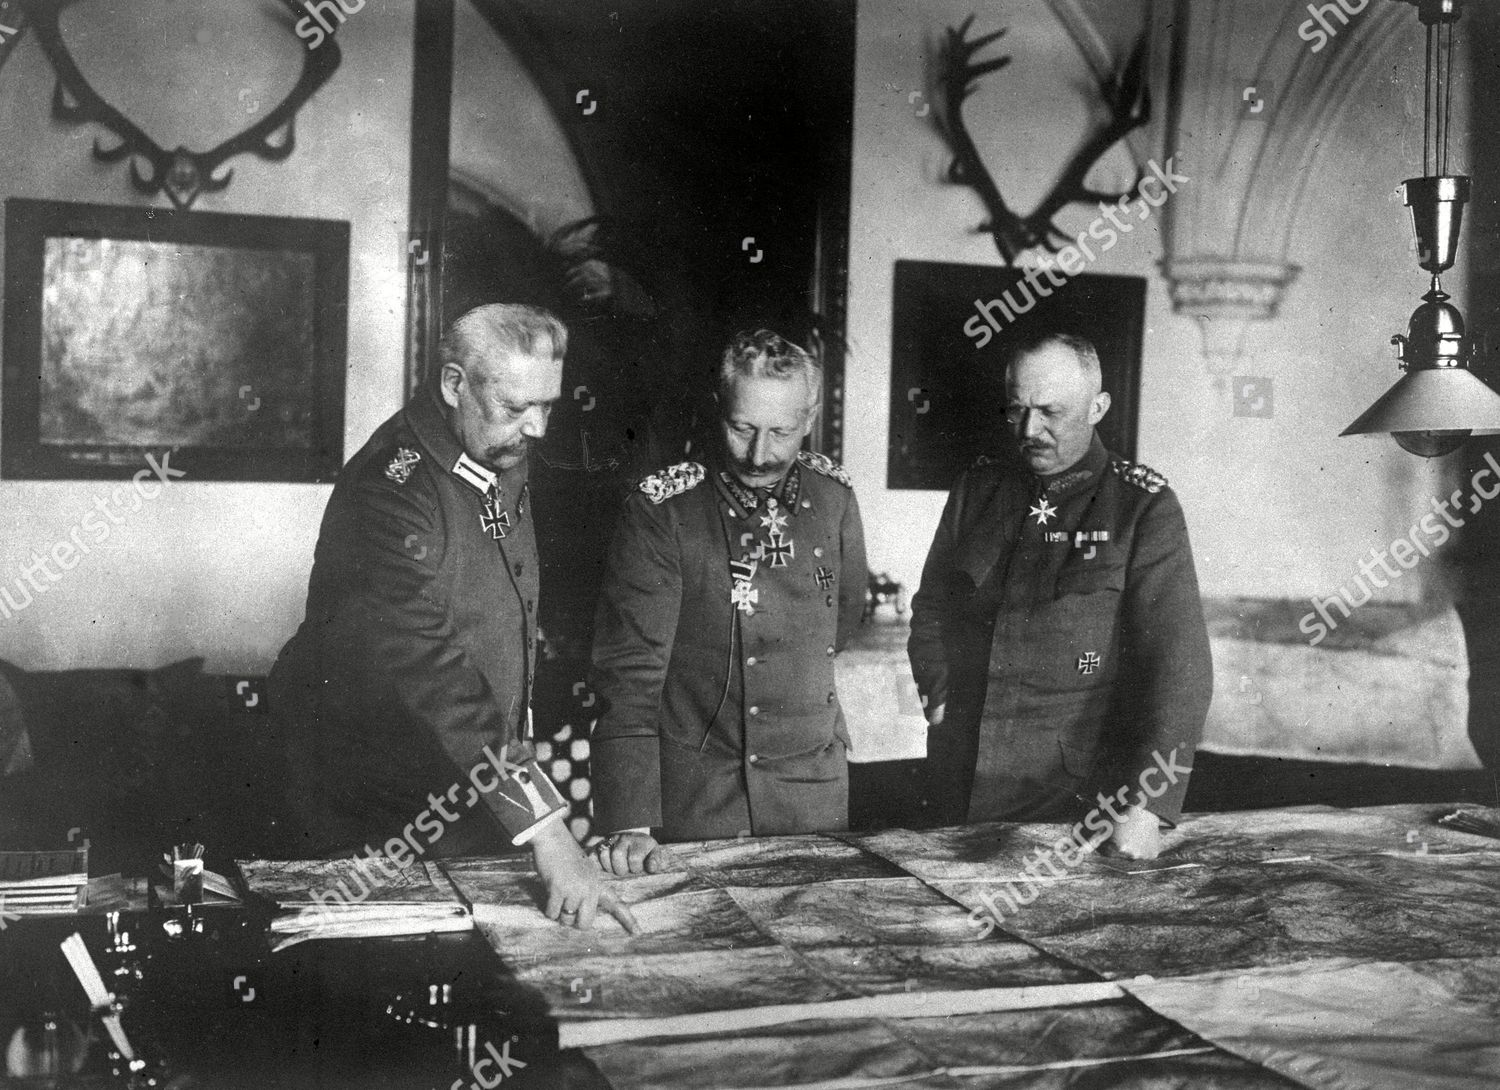 FIRST WORLD WAR LEADERS, Germany